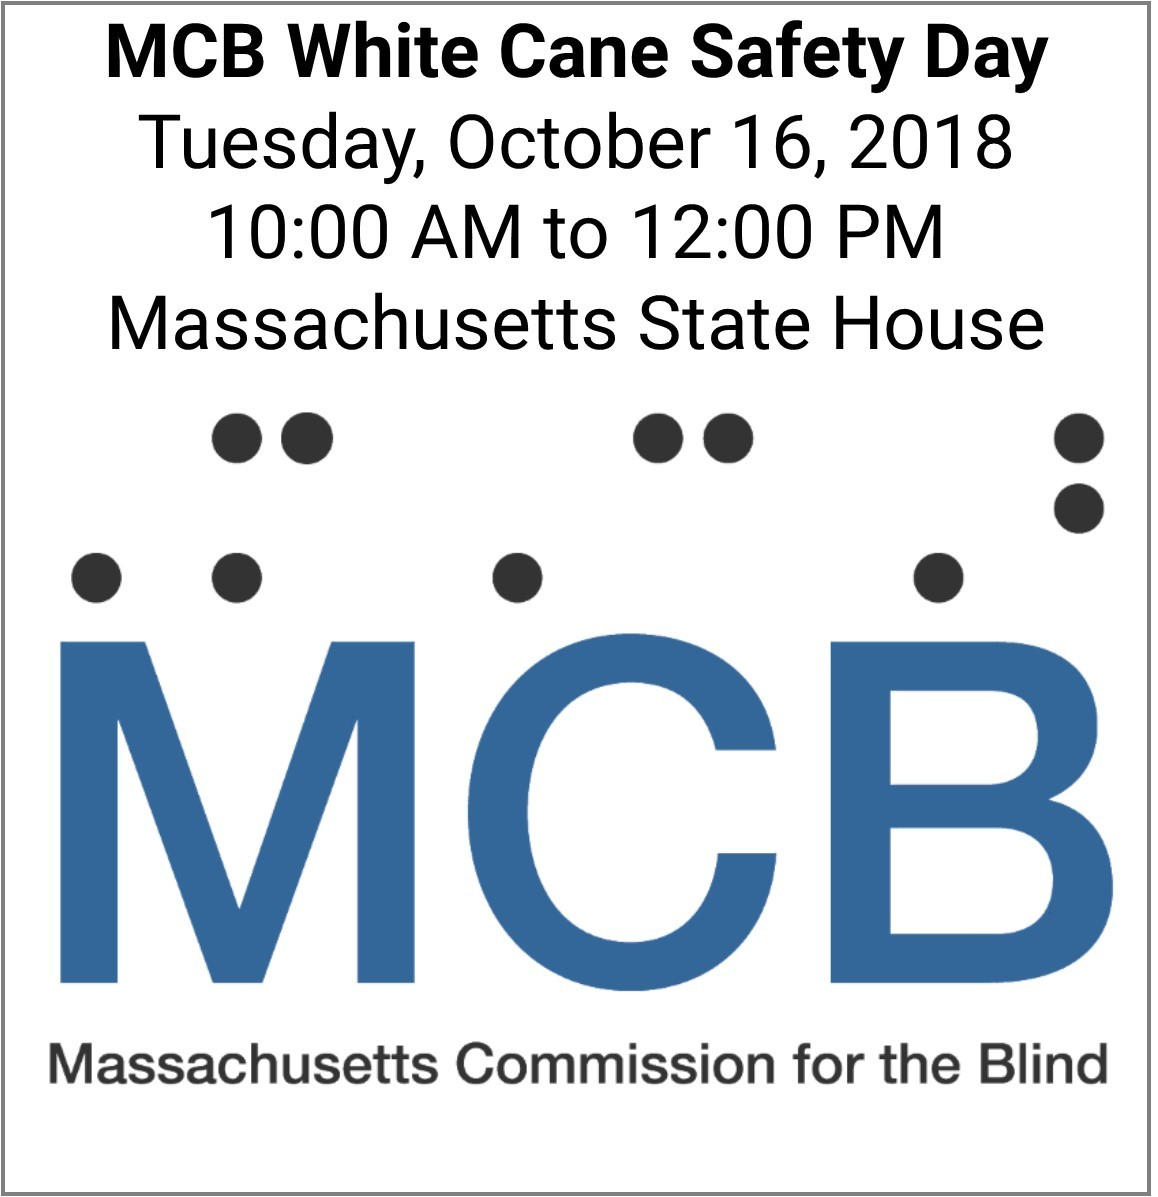 Massachusetts Commission For The Blind Invites You To White Cane Safety Day